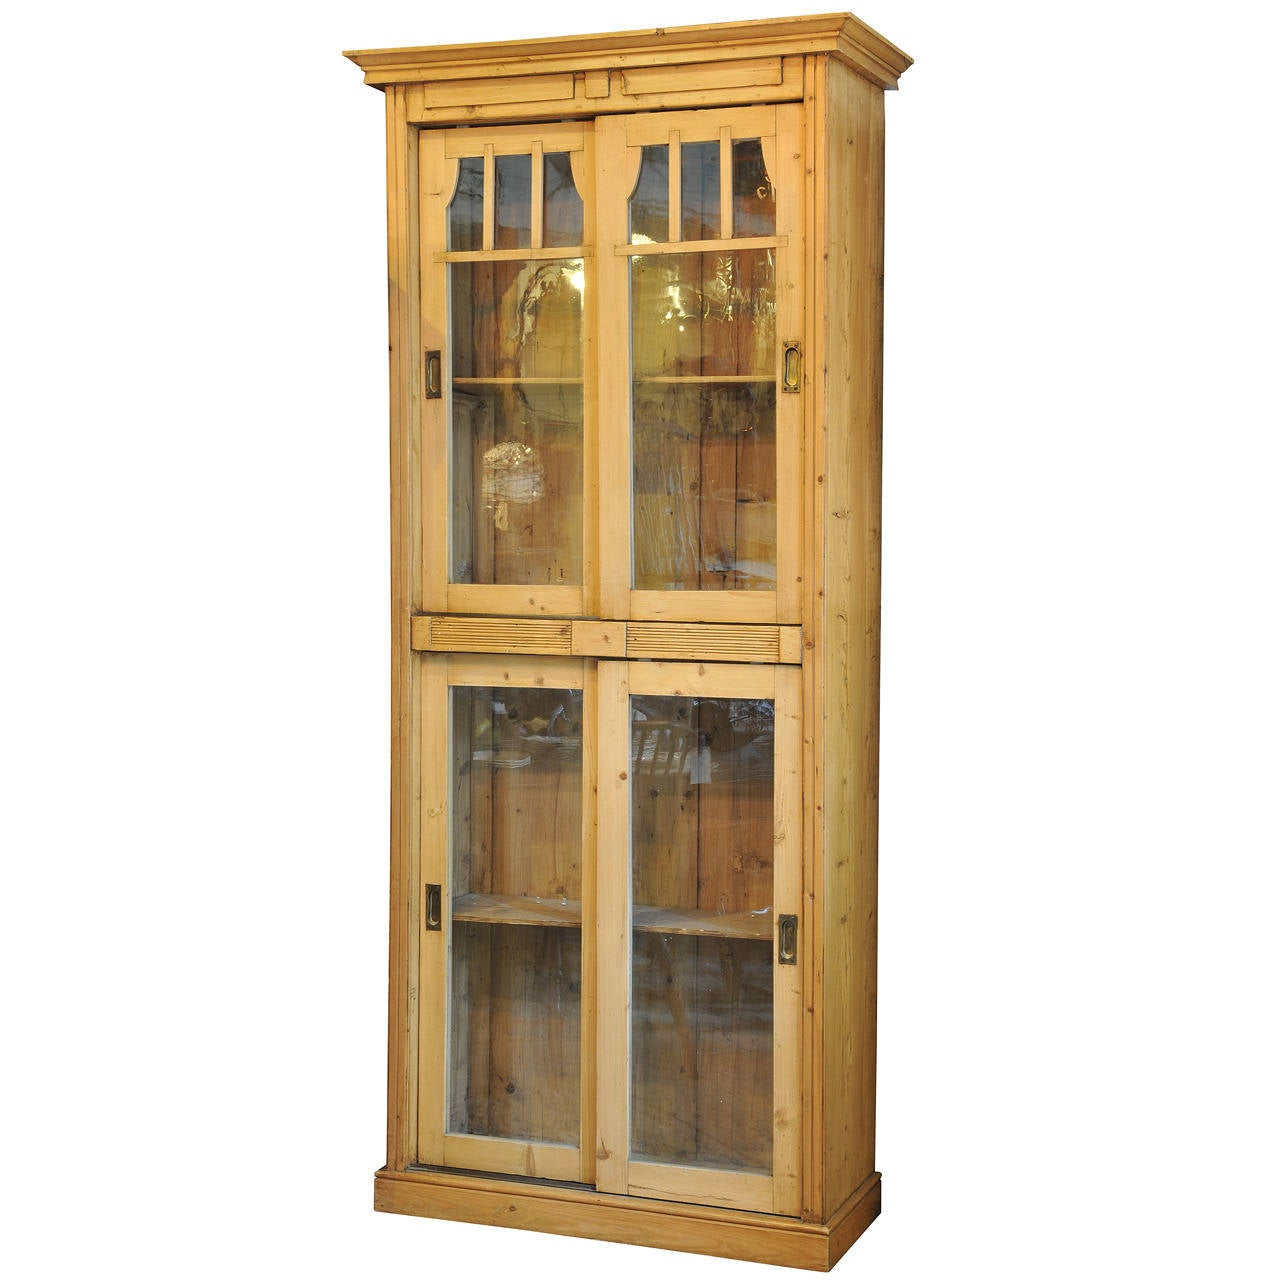 Tall Antique Pine Pantry Cupboard For Sale - Tall Antique Pine Pantry Cupboard For Sale At 1stdibs